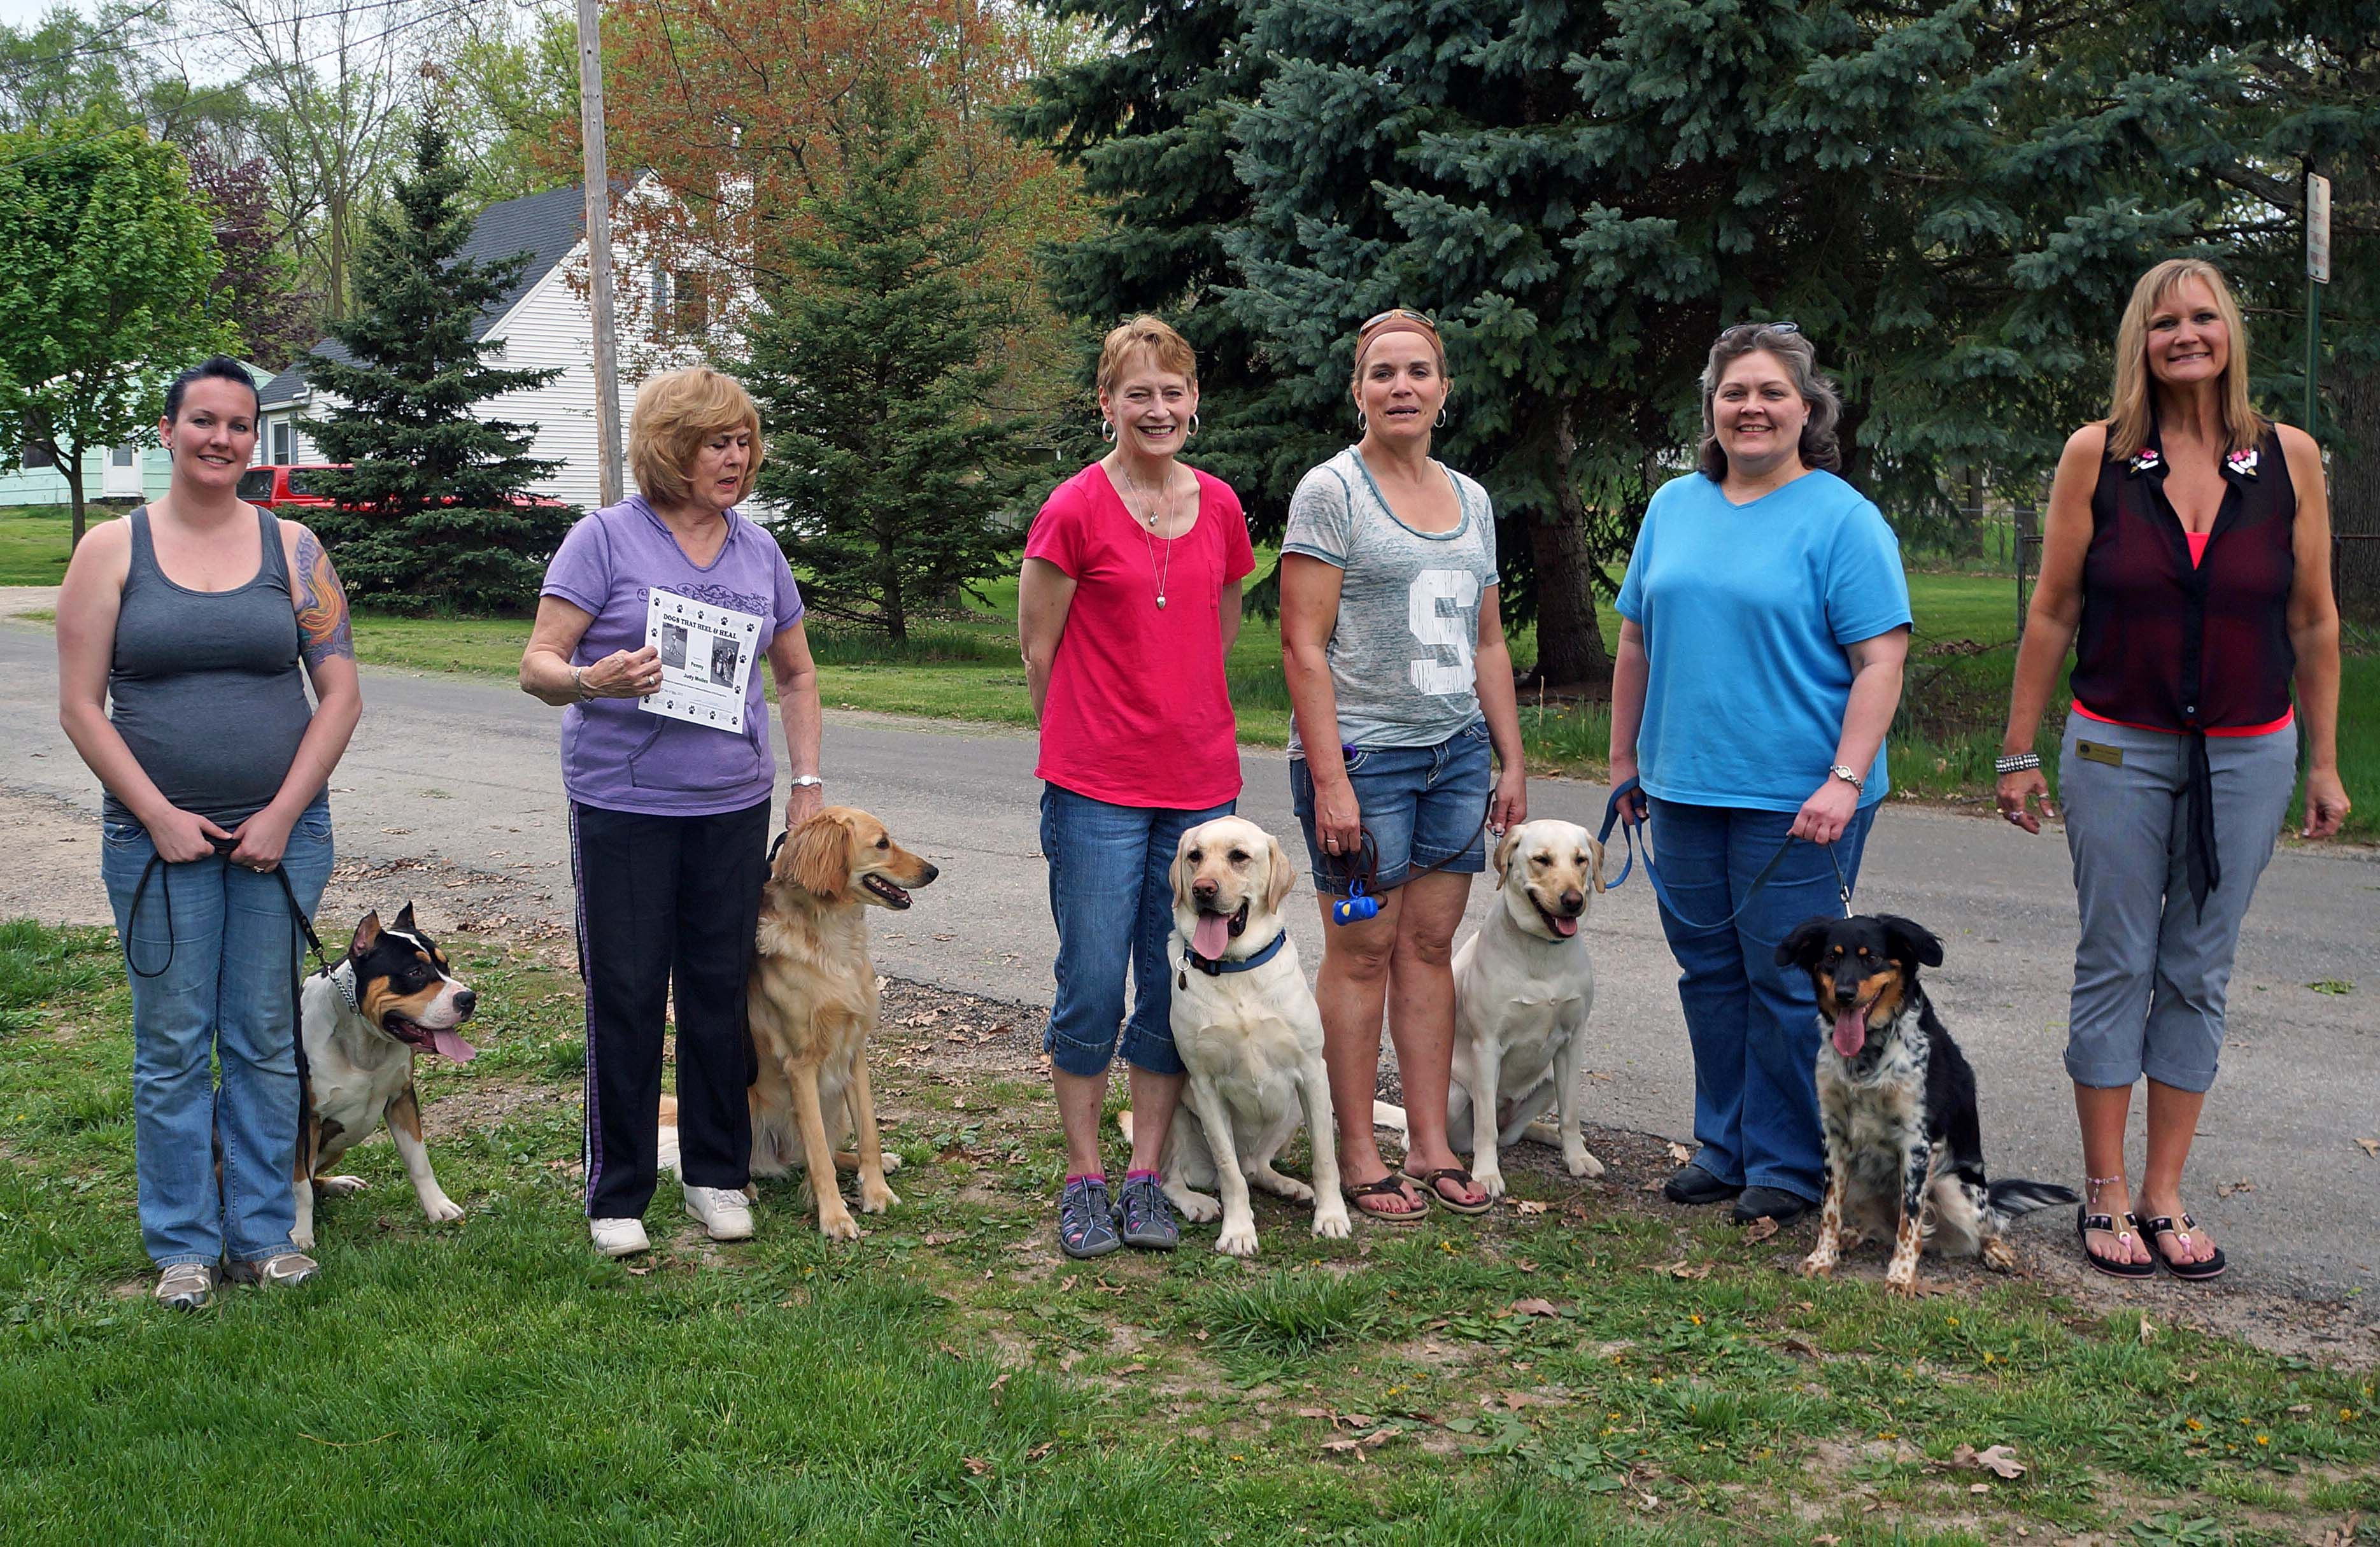 Our Dog Obedience Advanced Class Everyone Received Their Akc